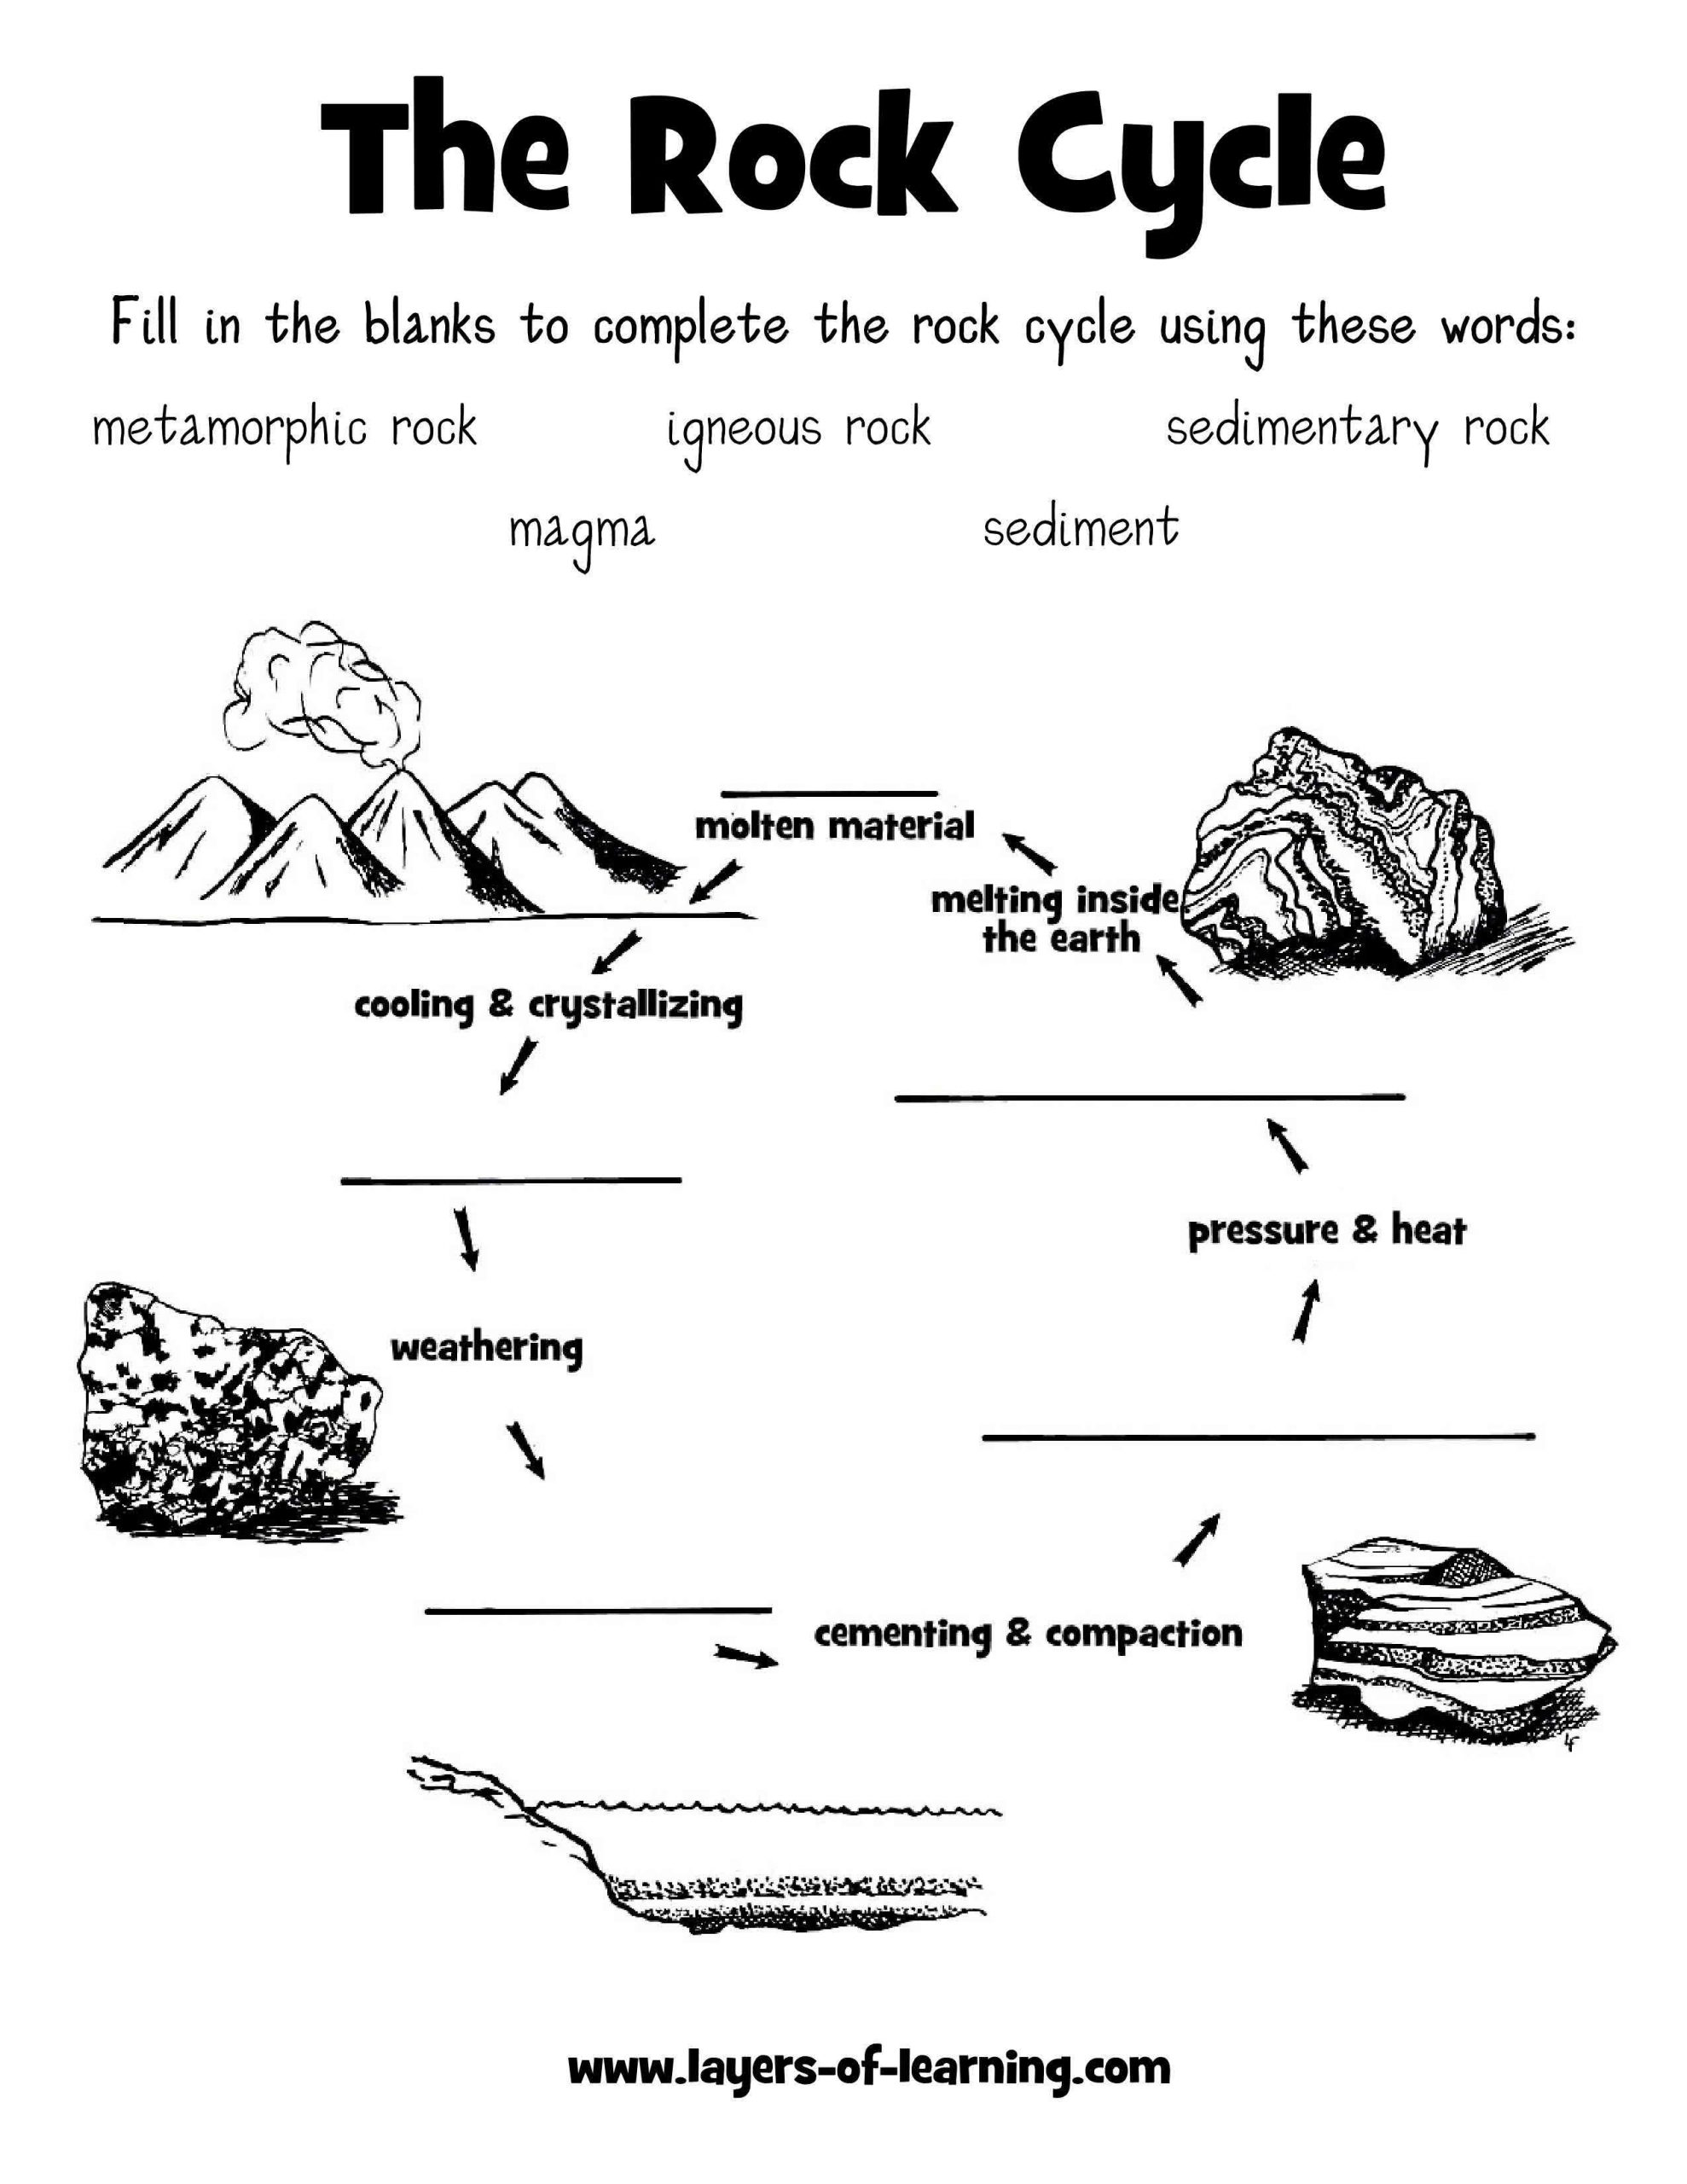 rock cycle worksheet Layers of Learning